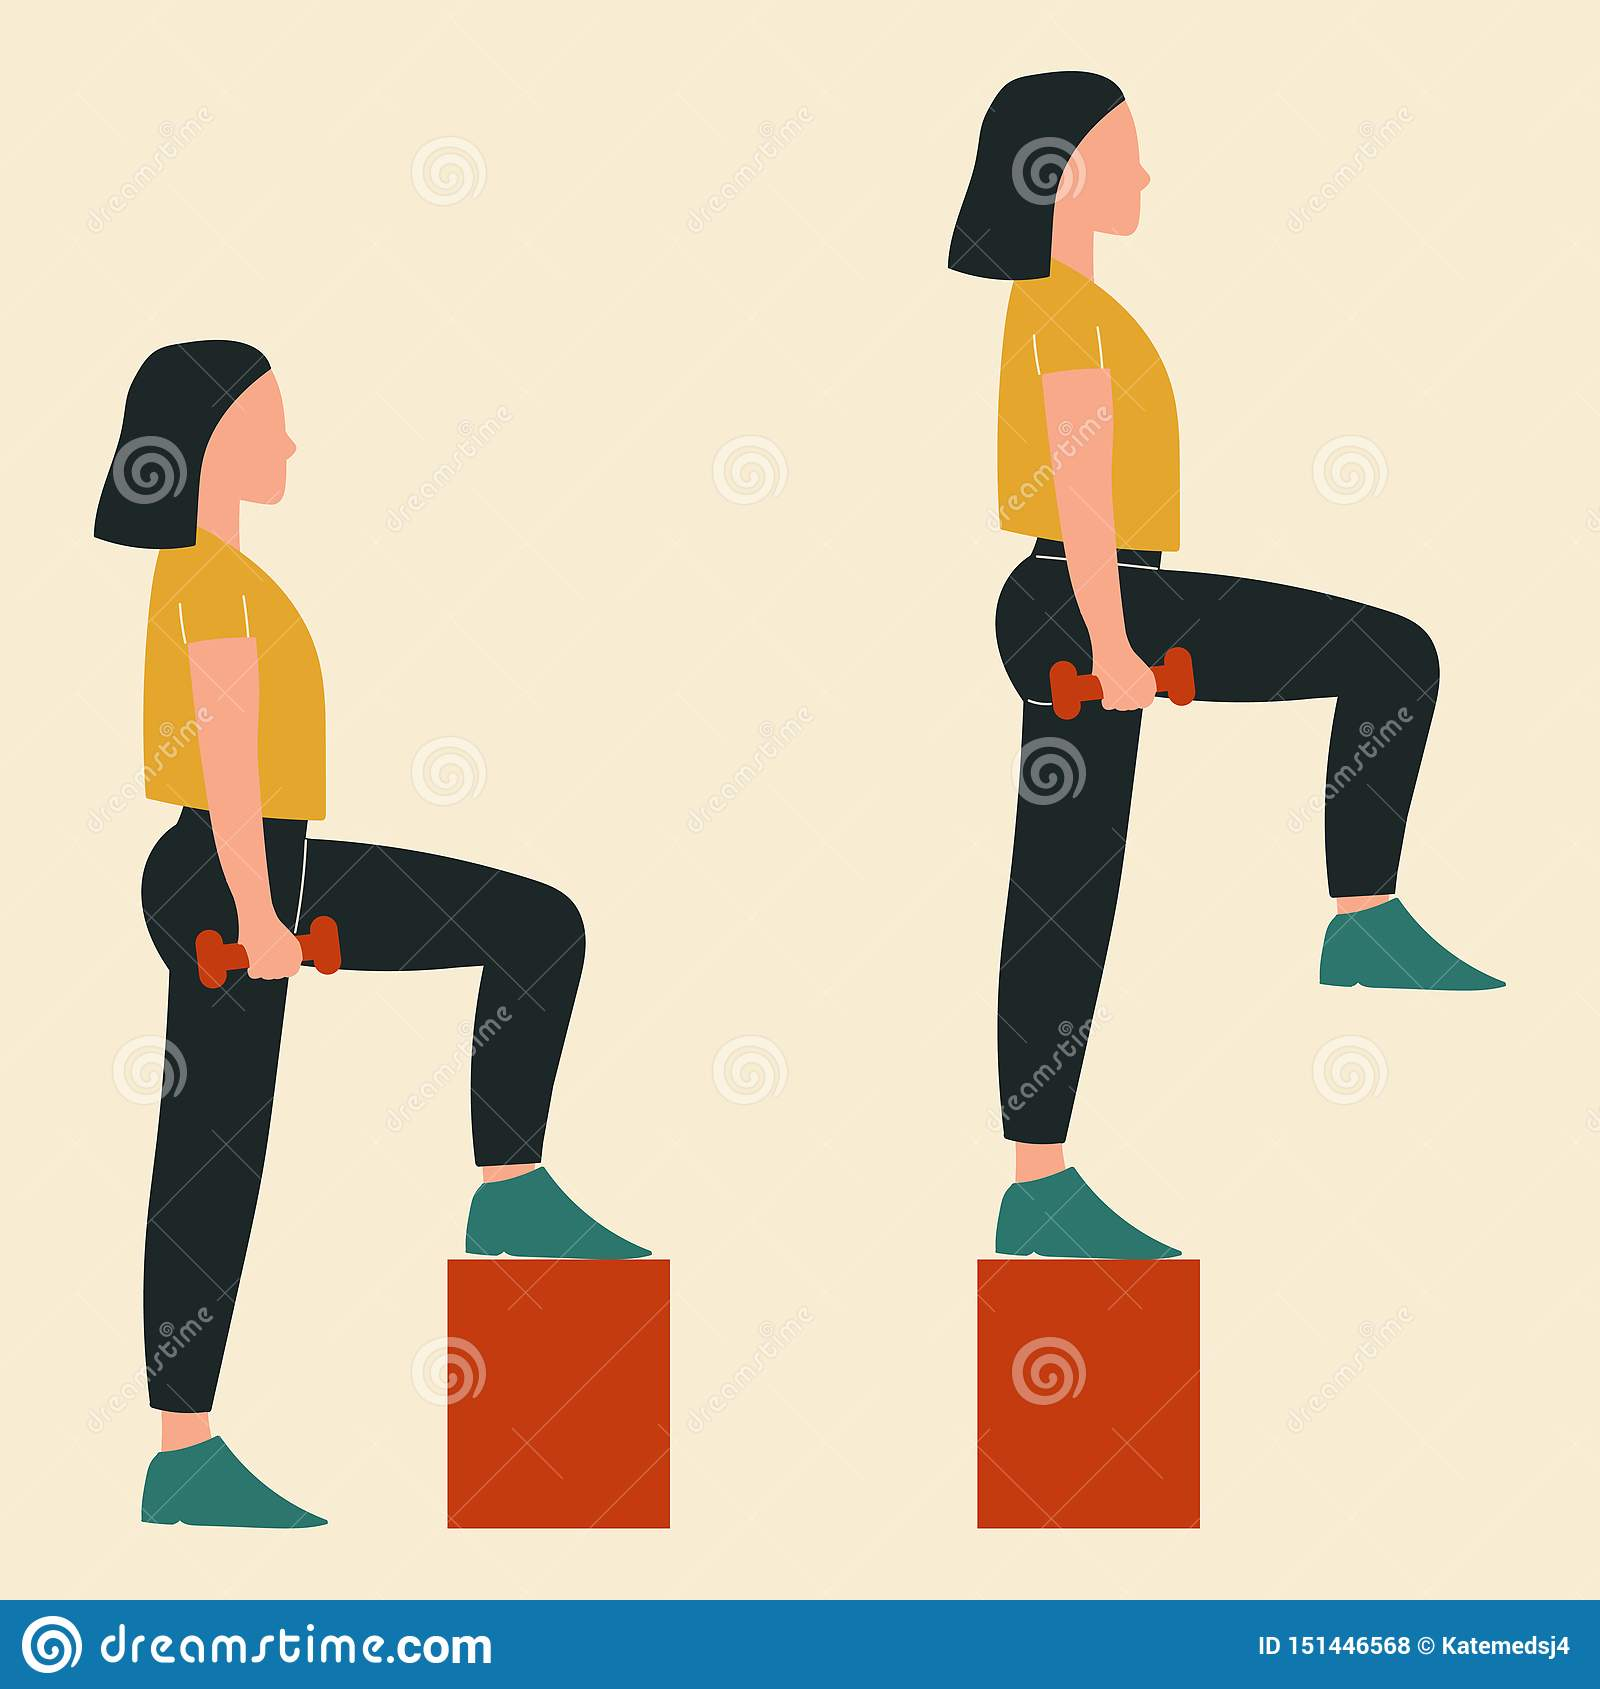 Woman doing steps-up. Illustrations of glute exercises and workouts. Flat vector illustration